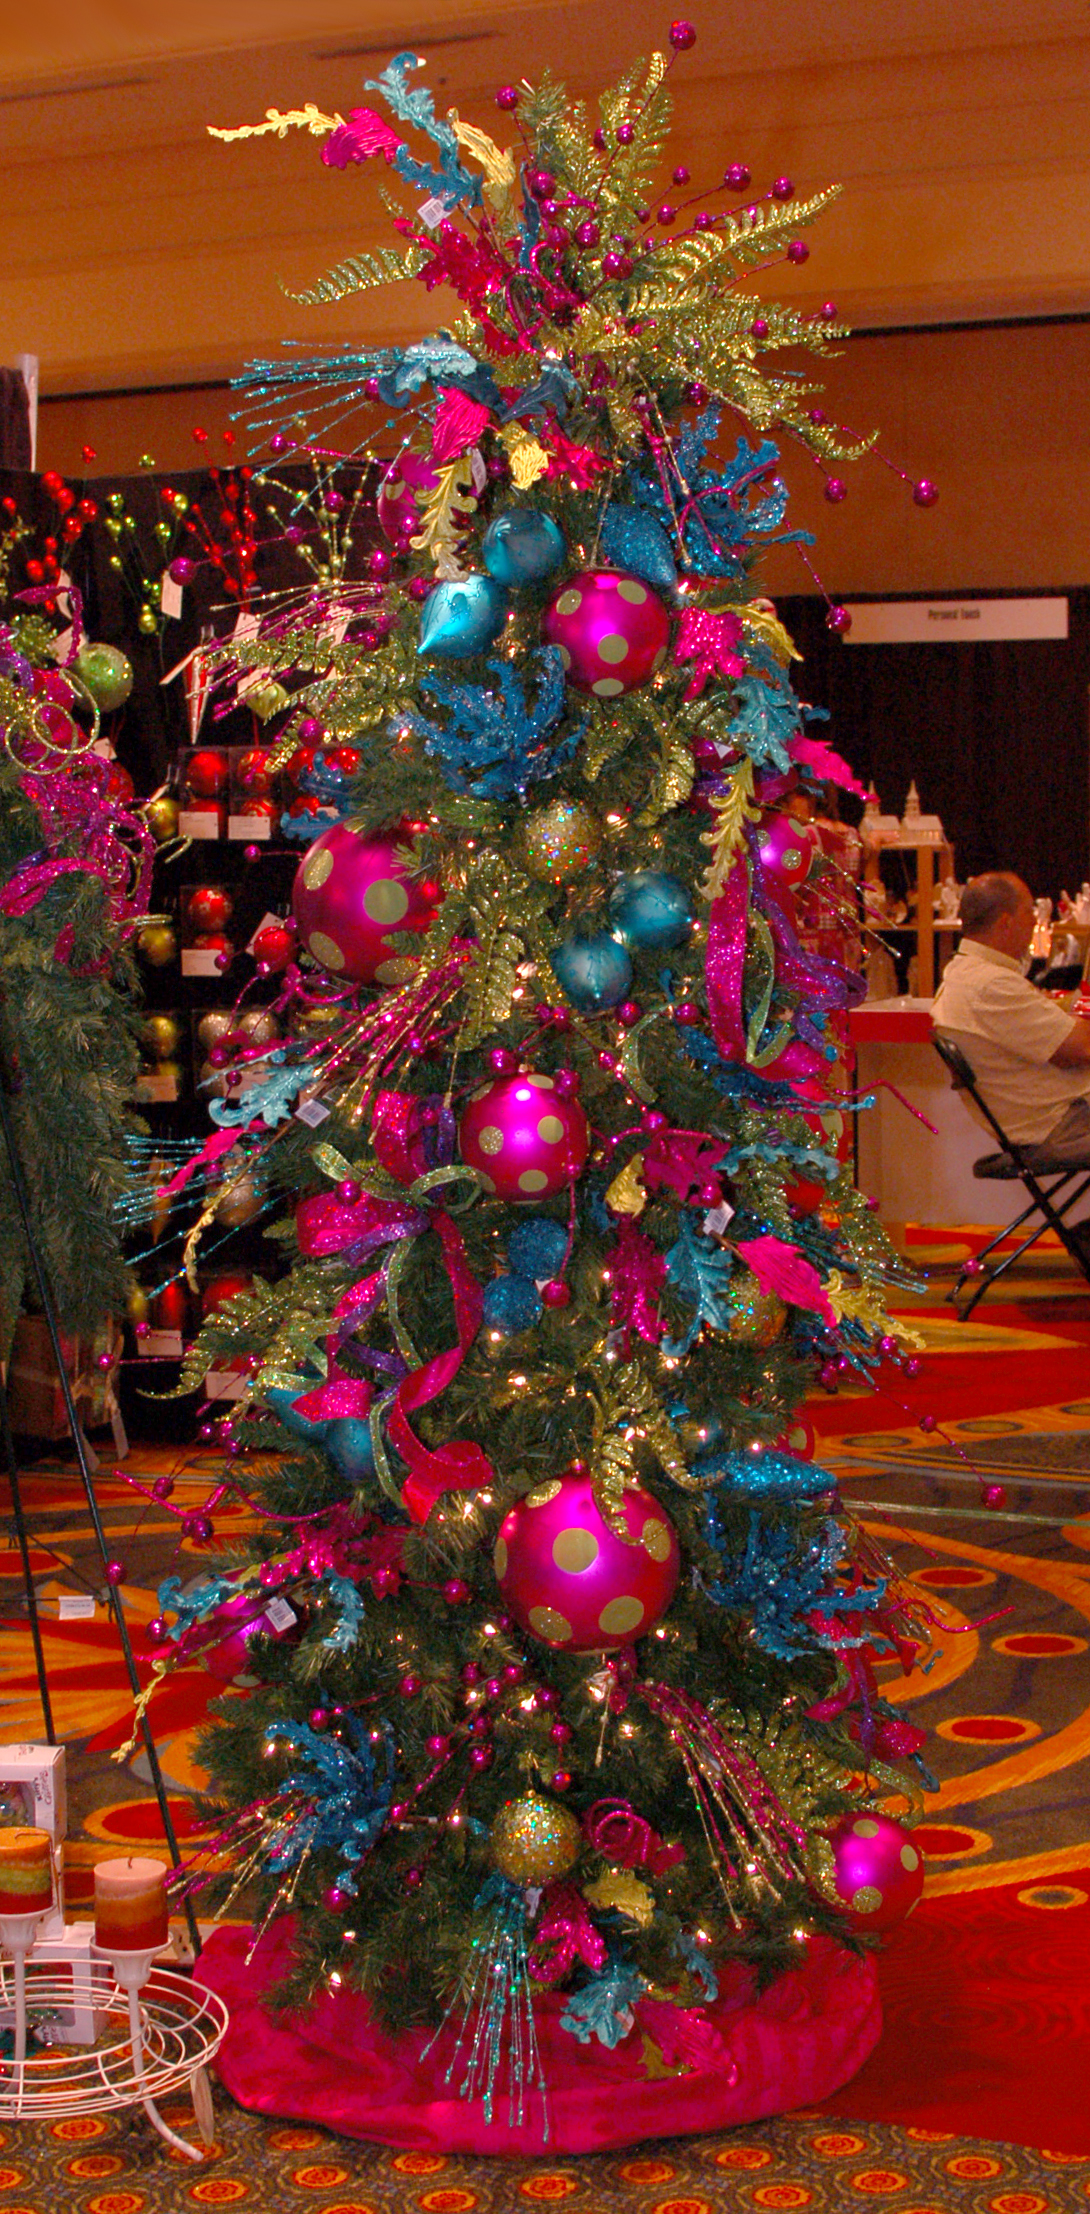 Colorful Christmas Tree Decorations.Glitz Glam This Ain T Your Momma S Christmas Decor